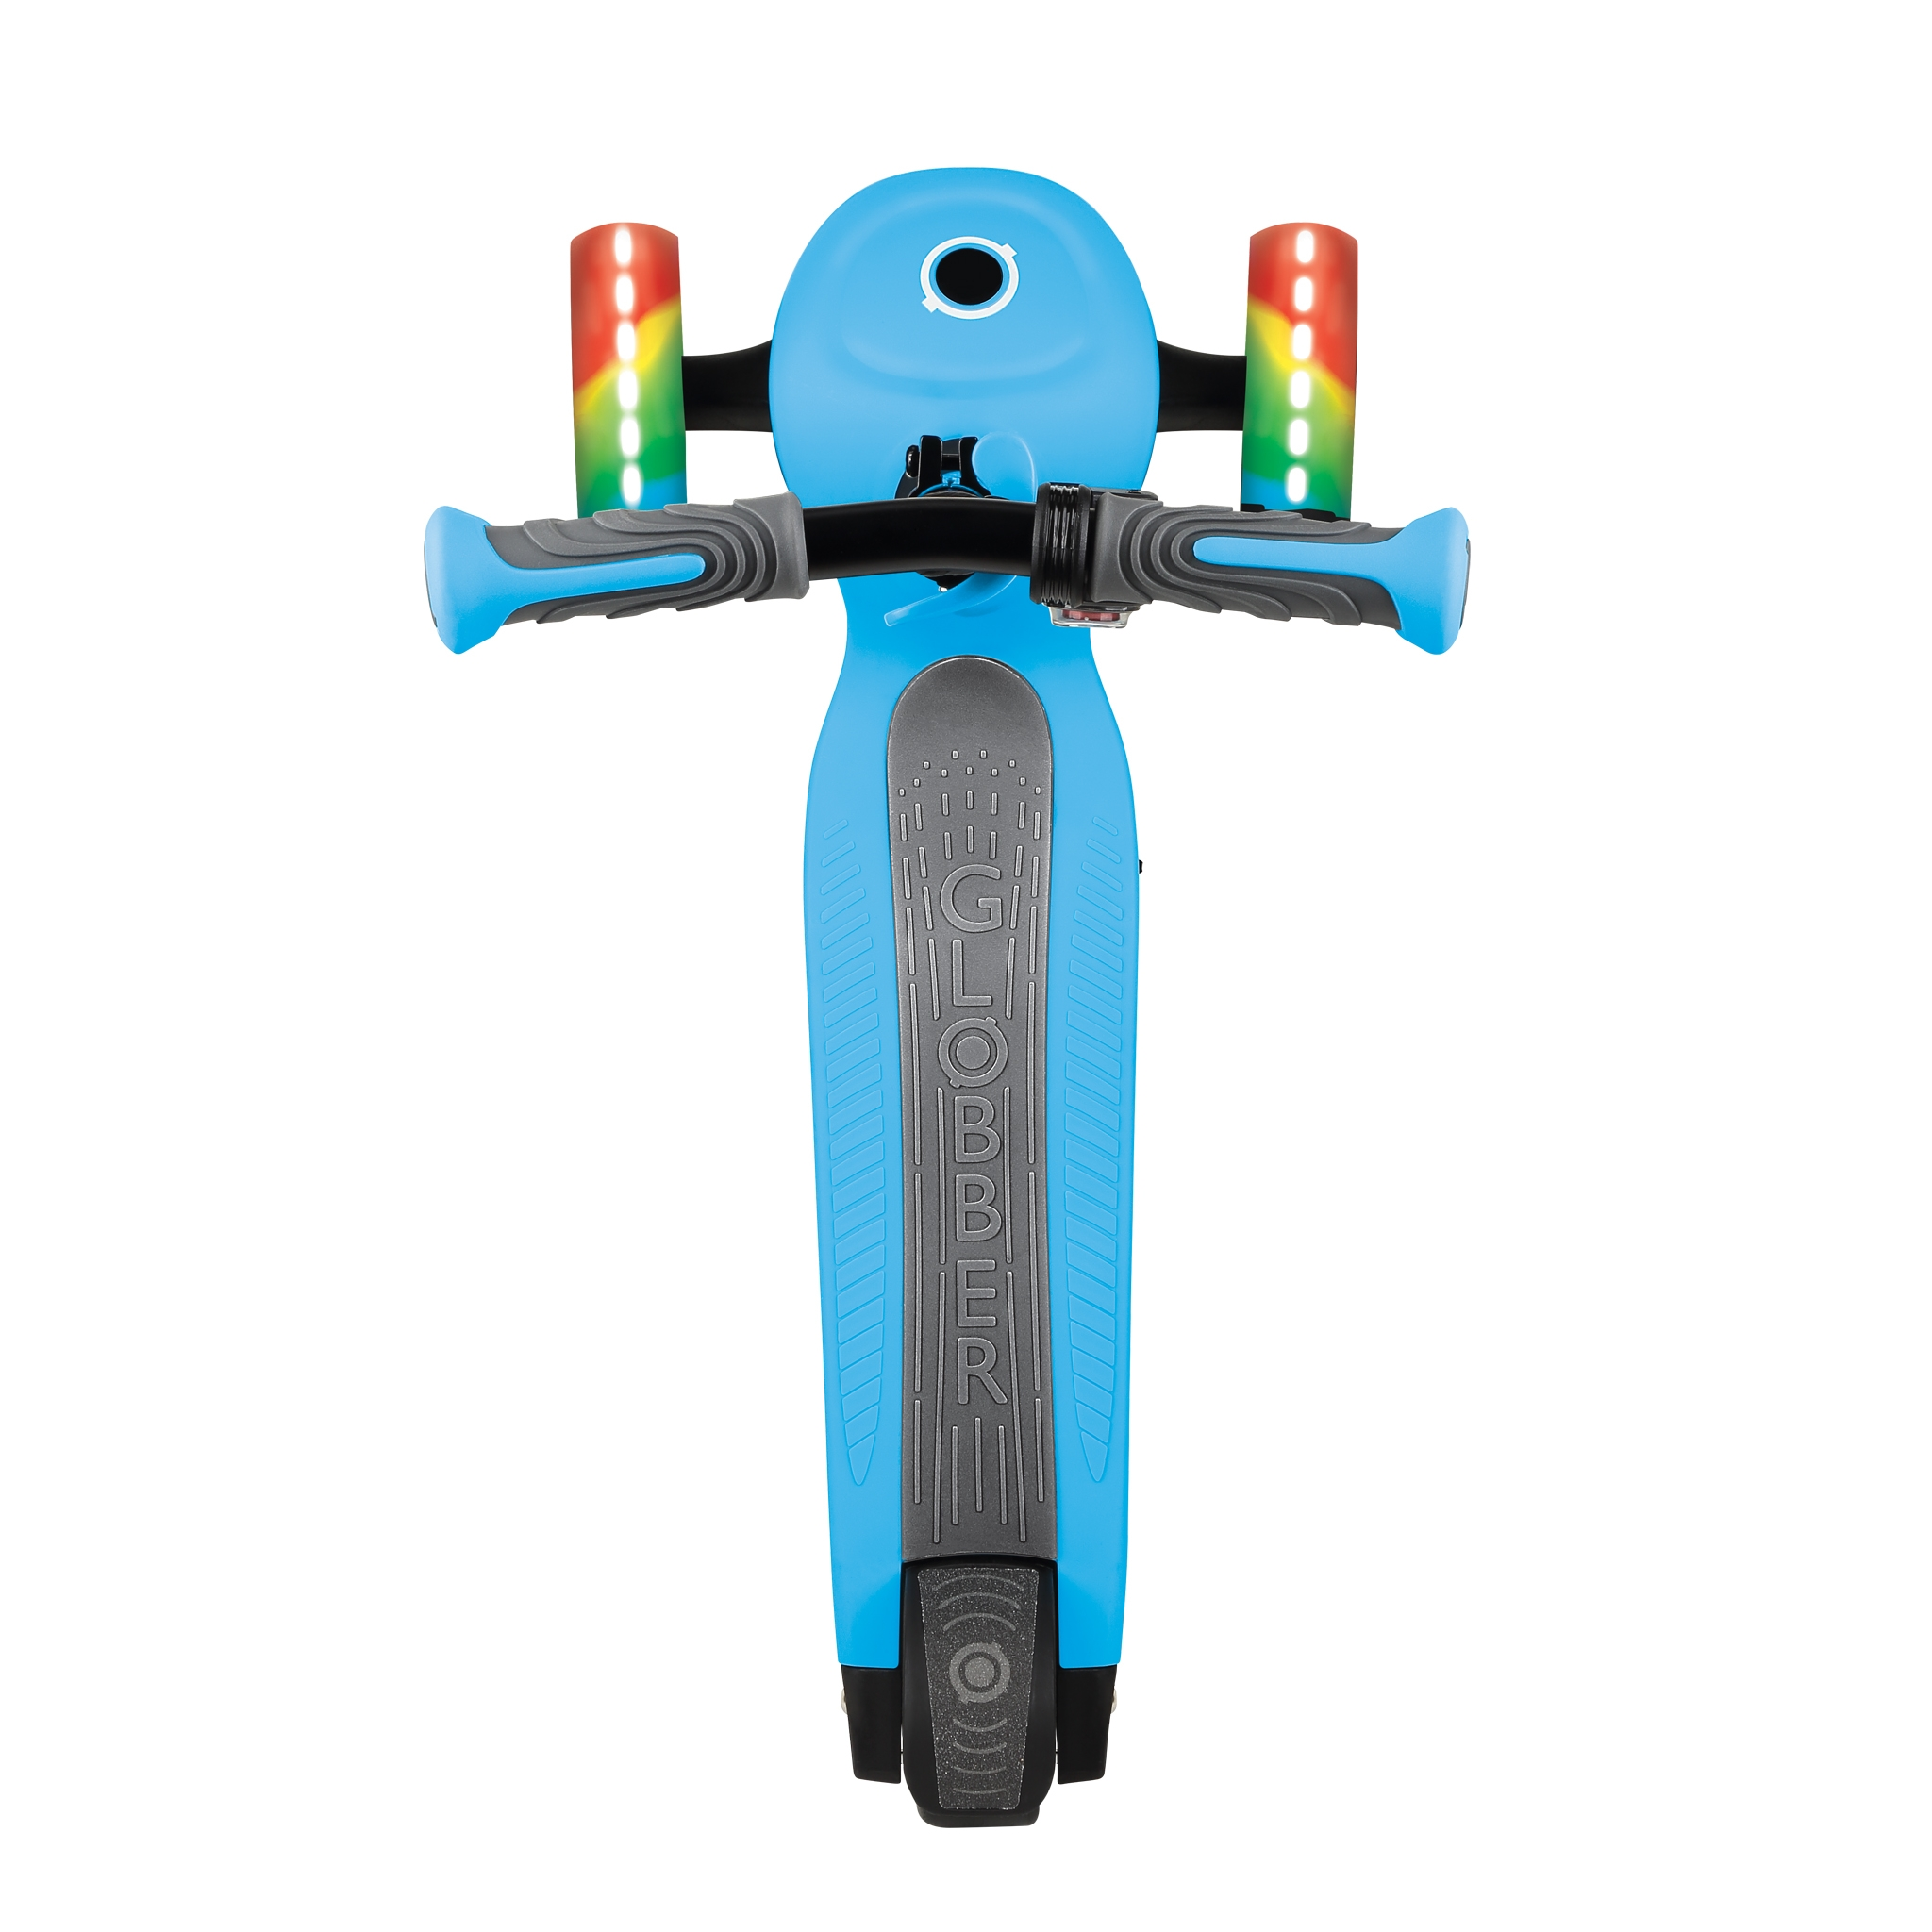 Globber-ONE-K-E-MOTION-4-award-winning-3-wheel-adjustable-electric-scooter-for-kids-with-wide-deck_sky-blue